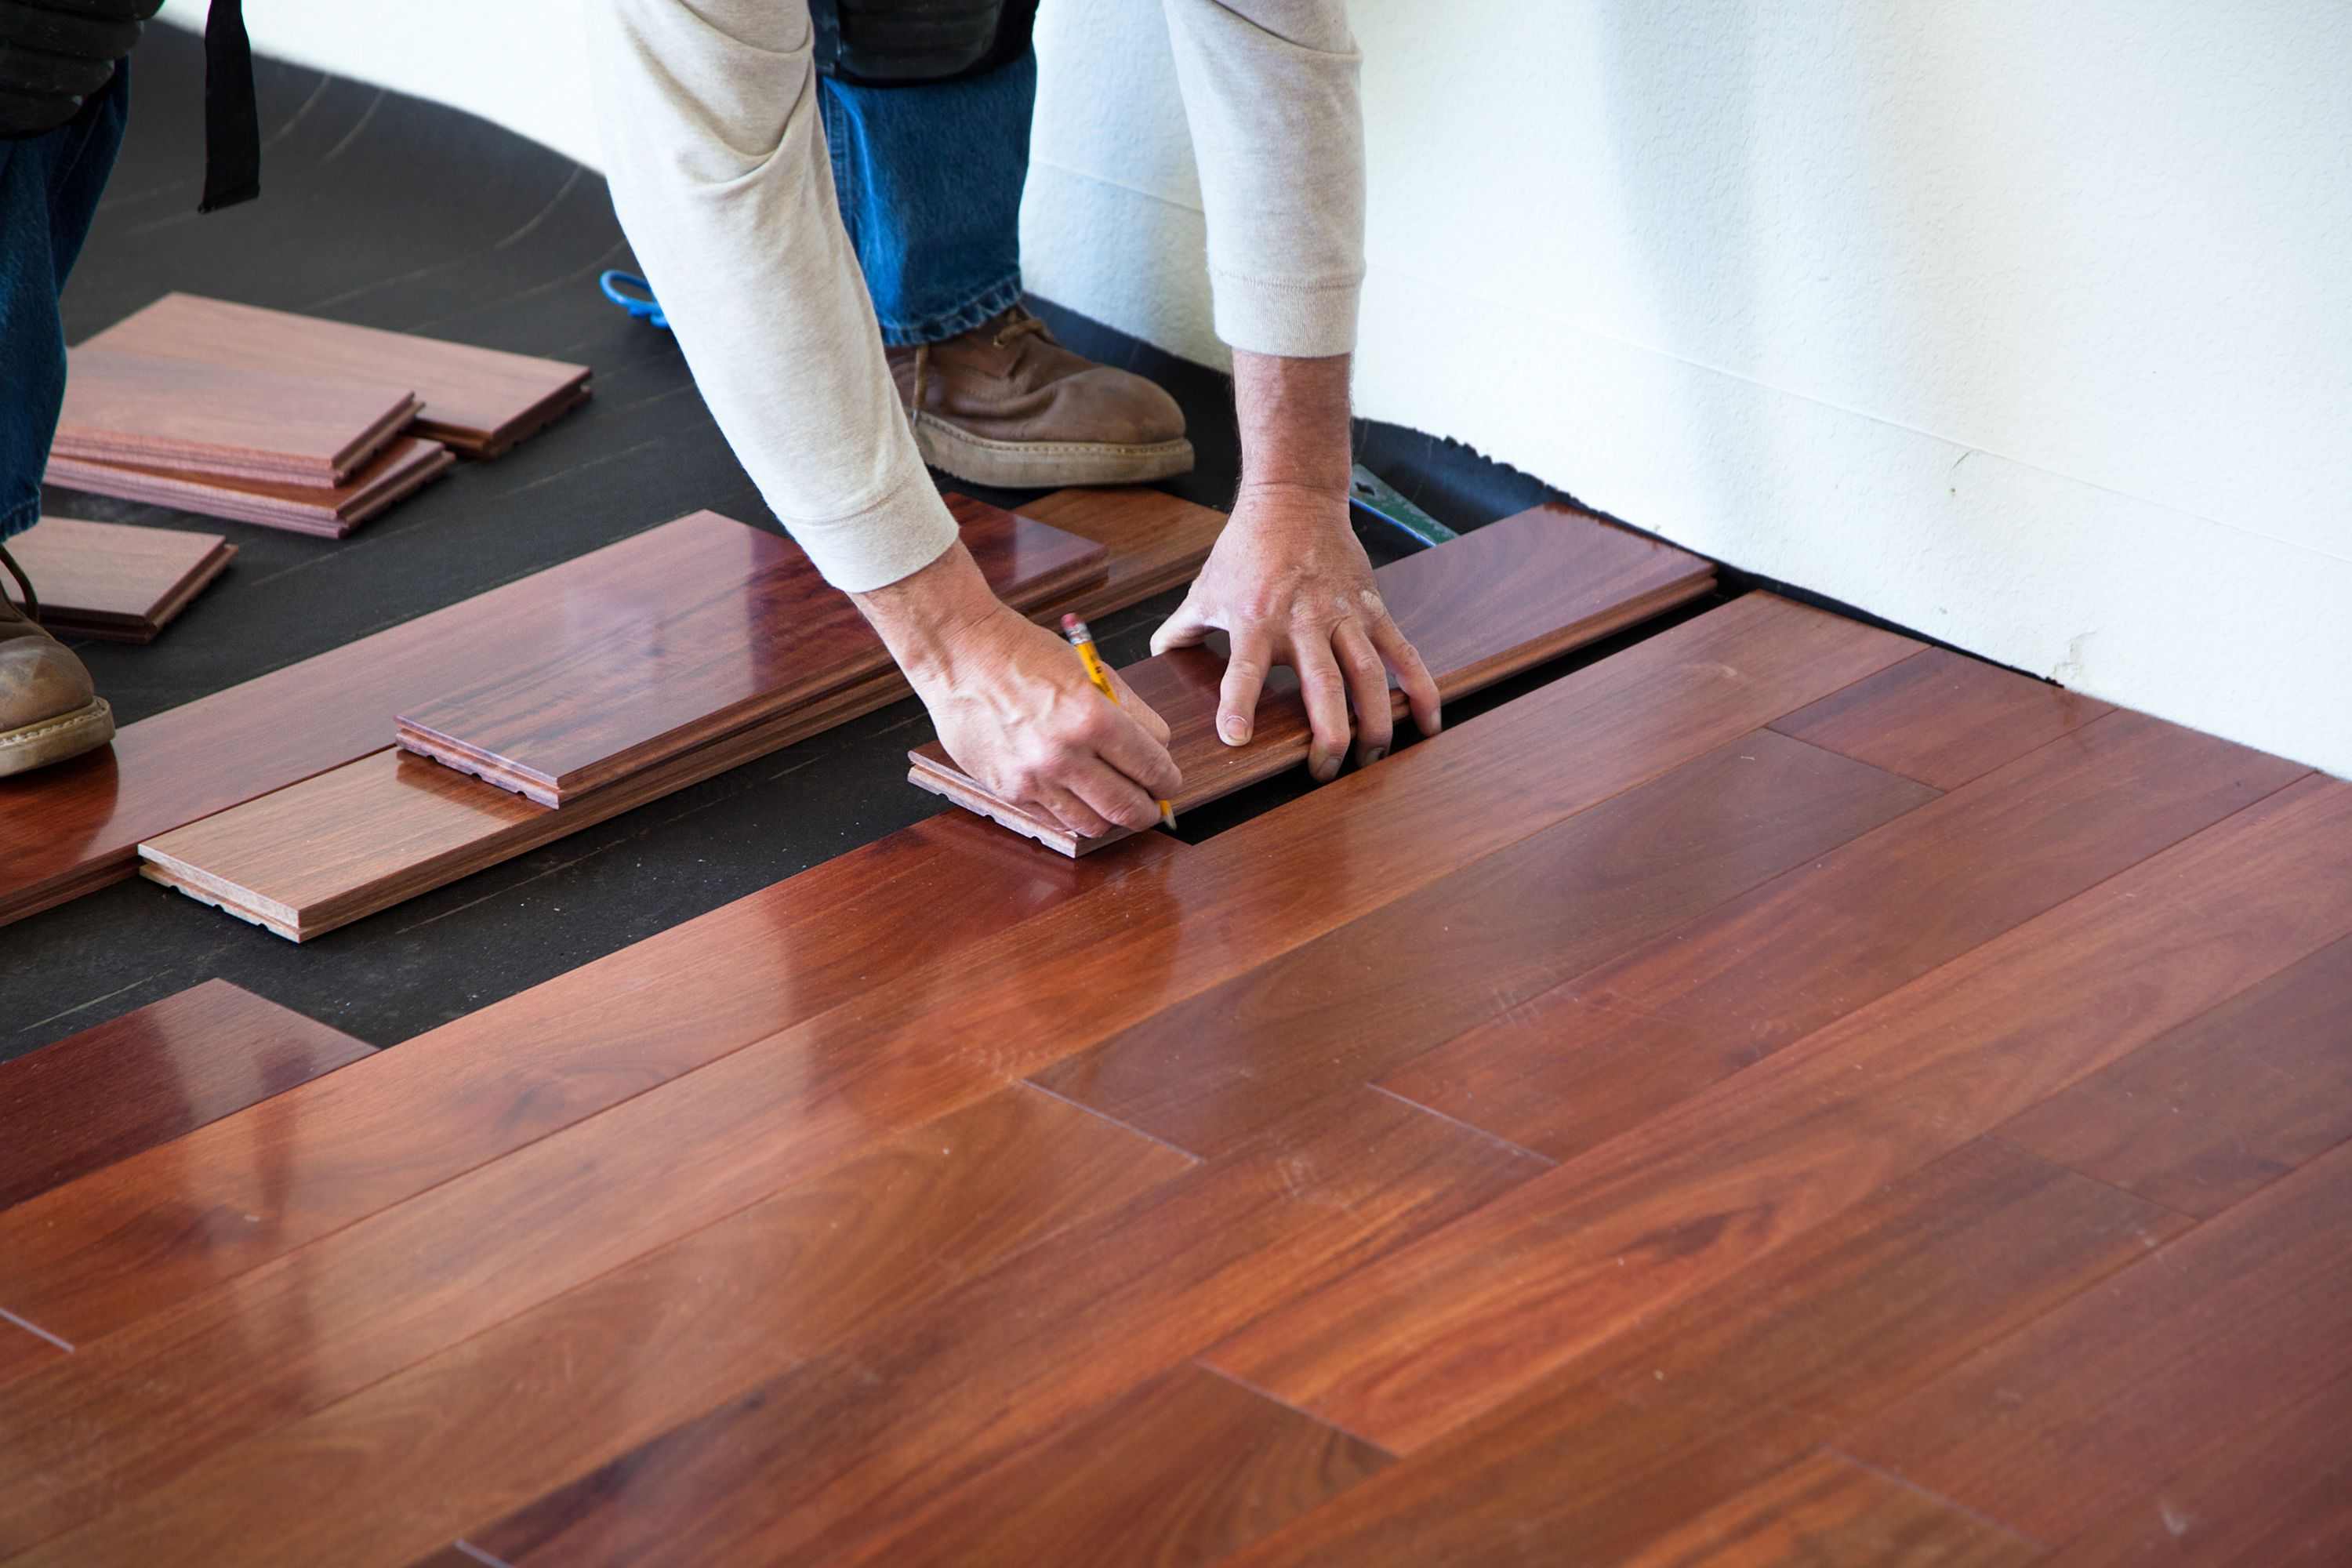 Learn about tile floor transitions bridge the gap subflooring for wood tile and other types of flooring dailygadgetfo Choice Image